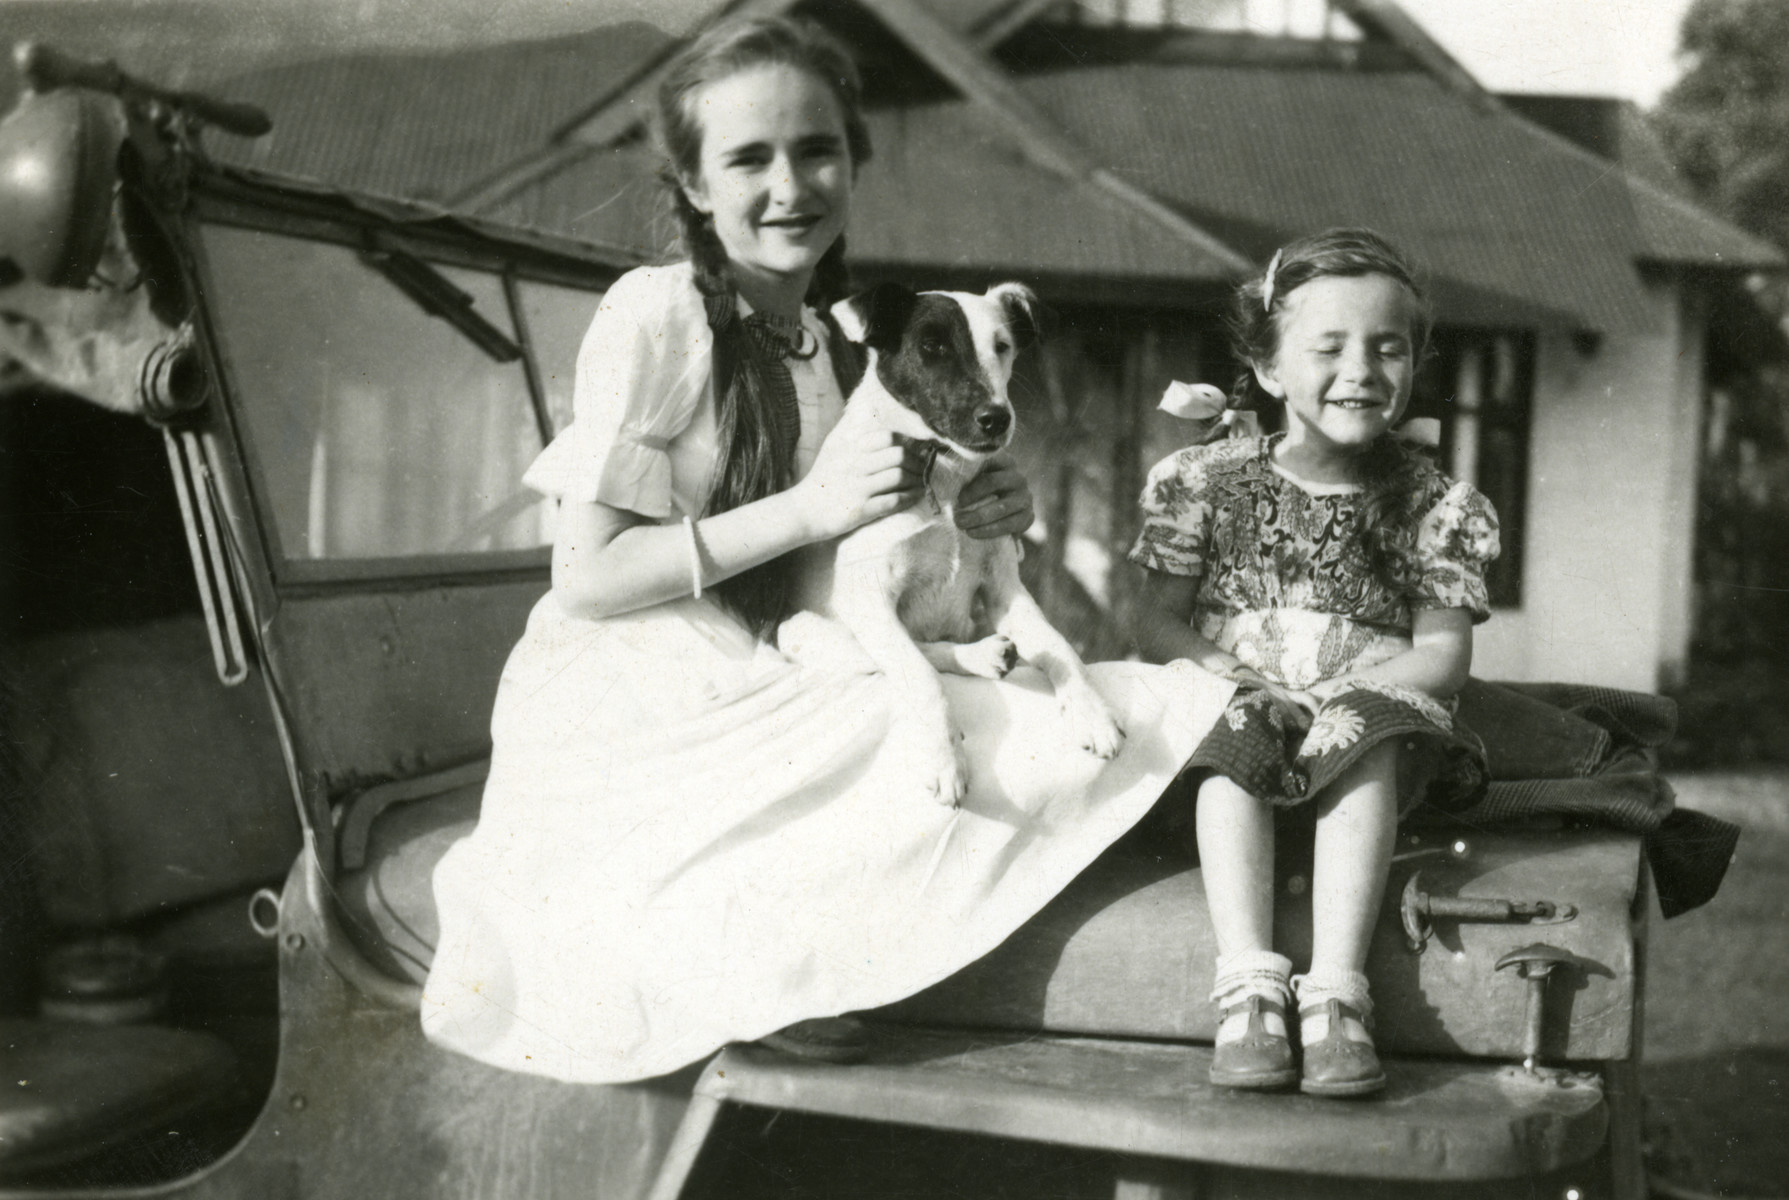 Felicity and Zahava Traub (cousins of the donor) sit on top of their father's Jeep which he bought from a US Army surplus store.